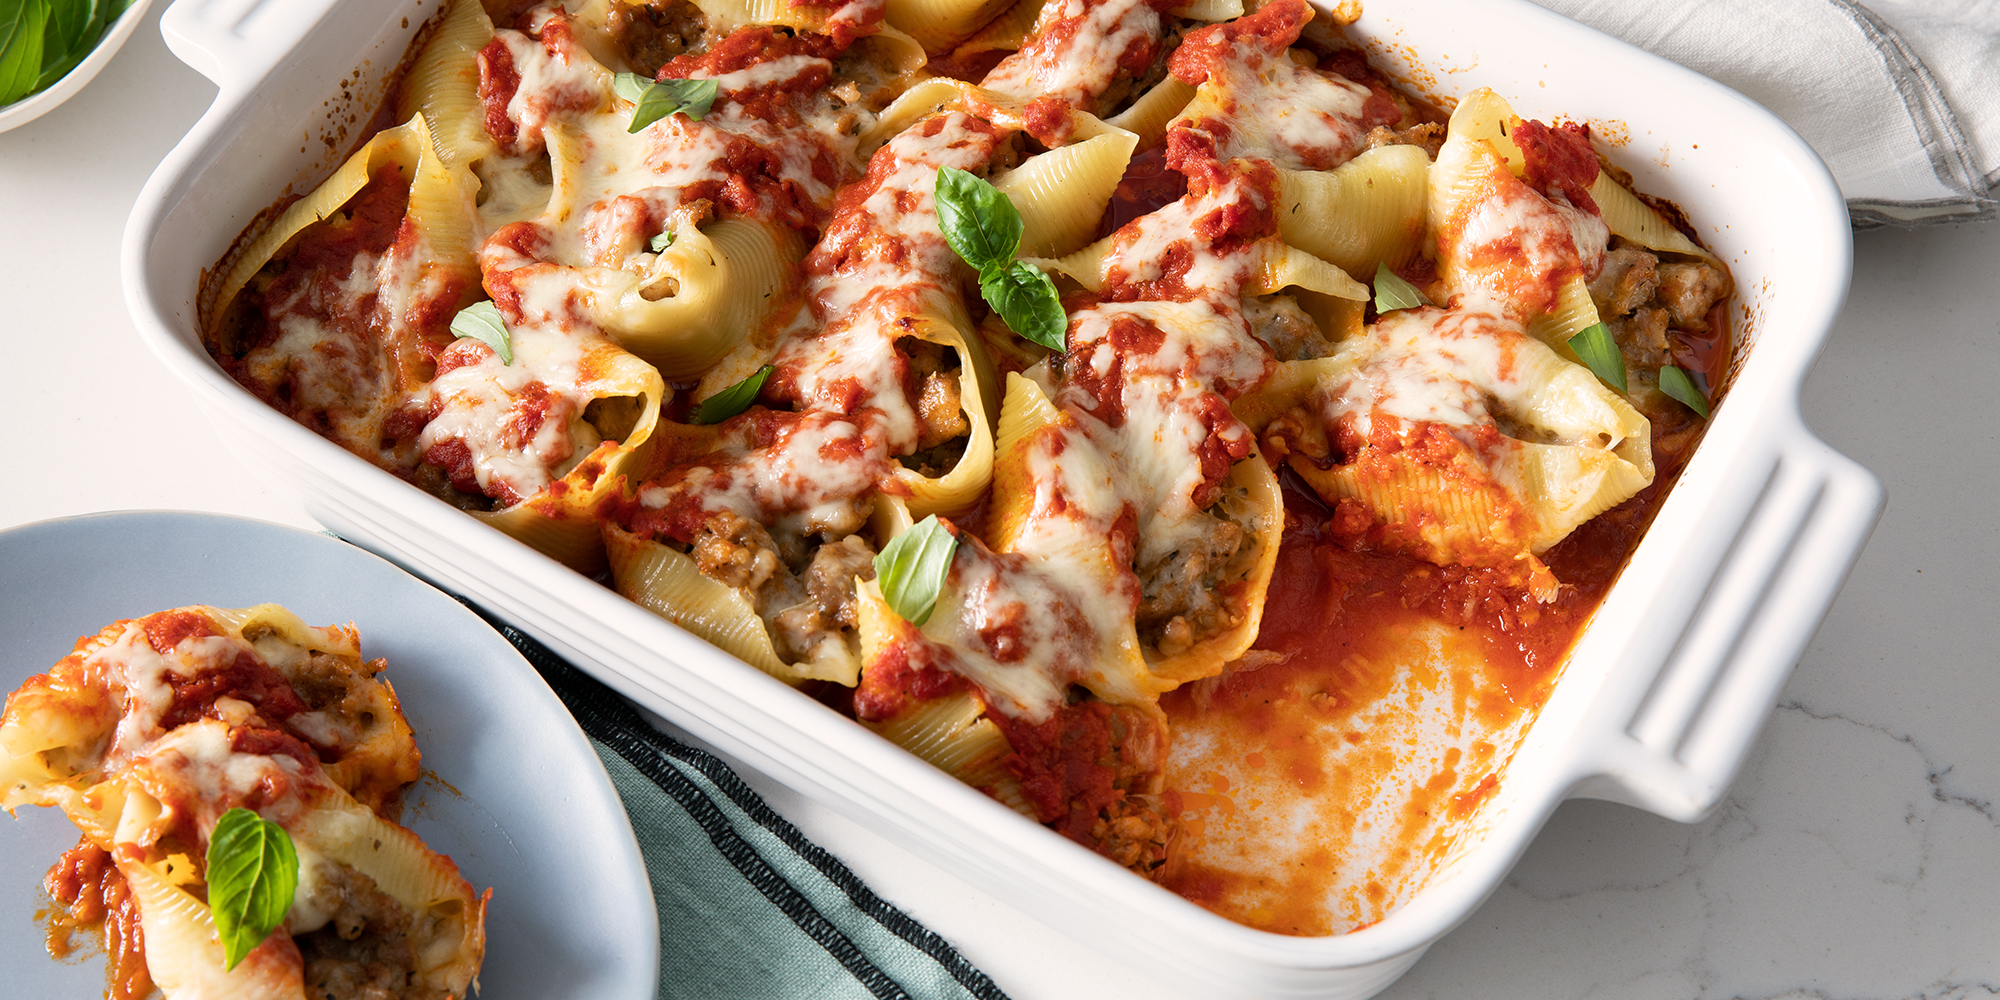 Looking into the corner of a white casserole dish of Italian stuffed shells. The casserole is garnished with fresh basil and has a scoop removed and plated.